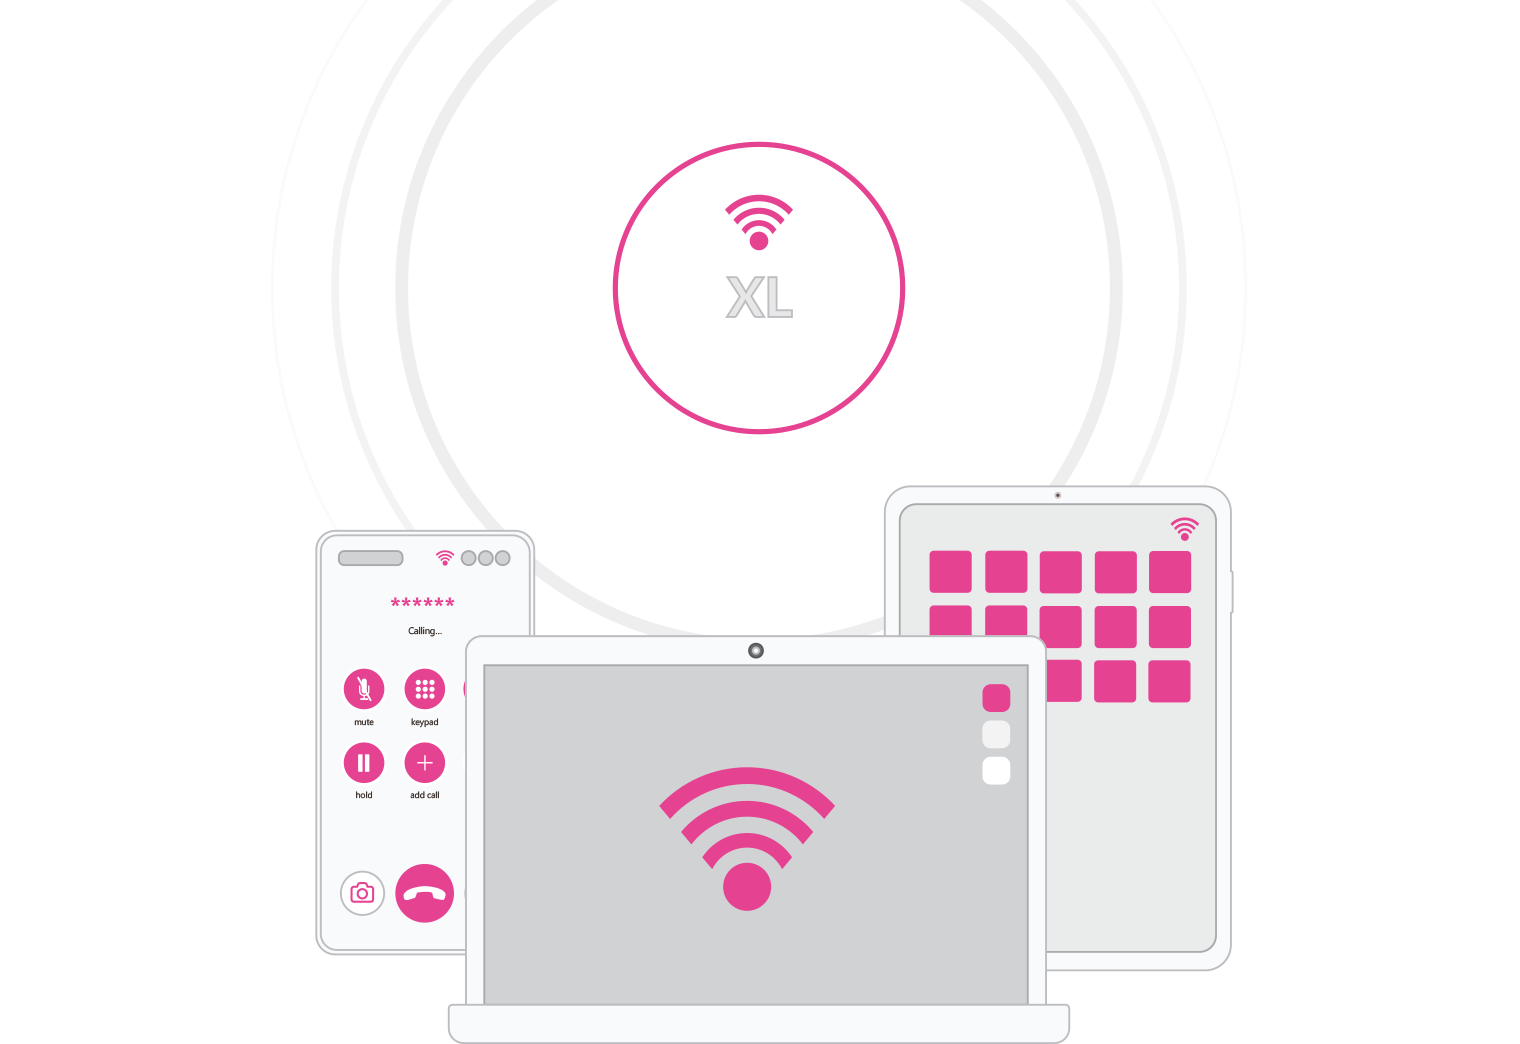 How To Extend WiFi Range and Network Coverage